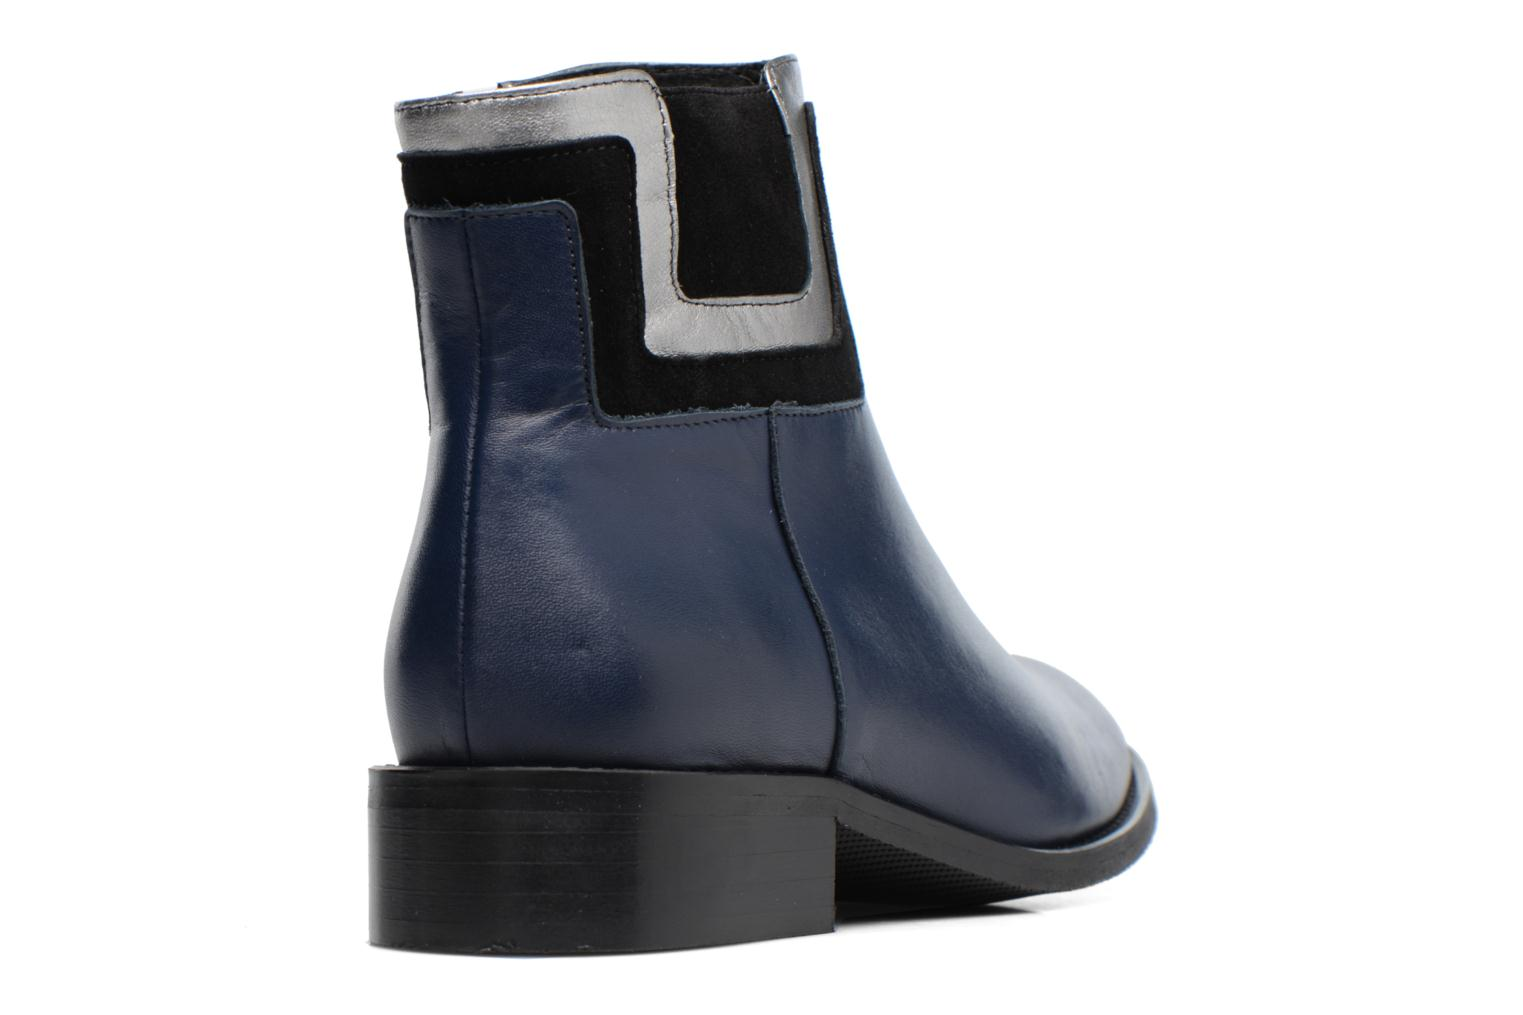 Boots Camp #21 Cuir Lisse Marine